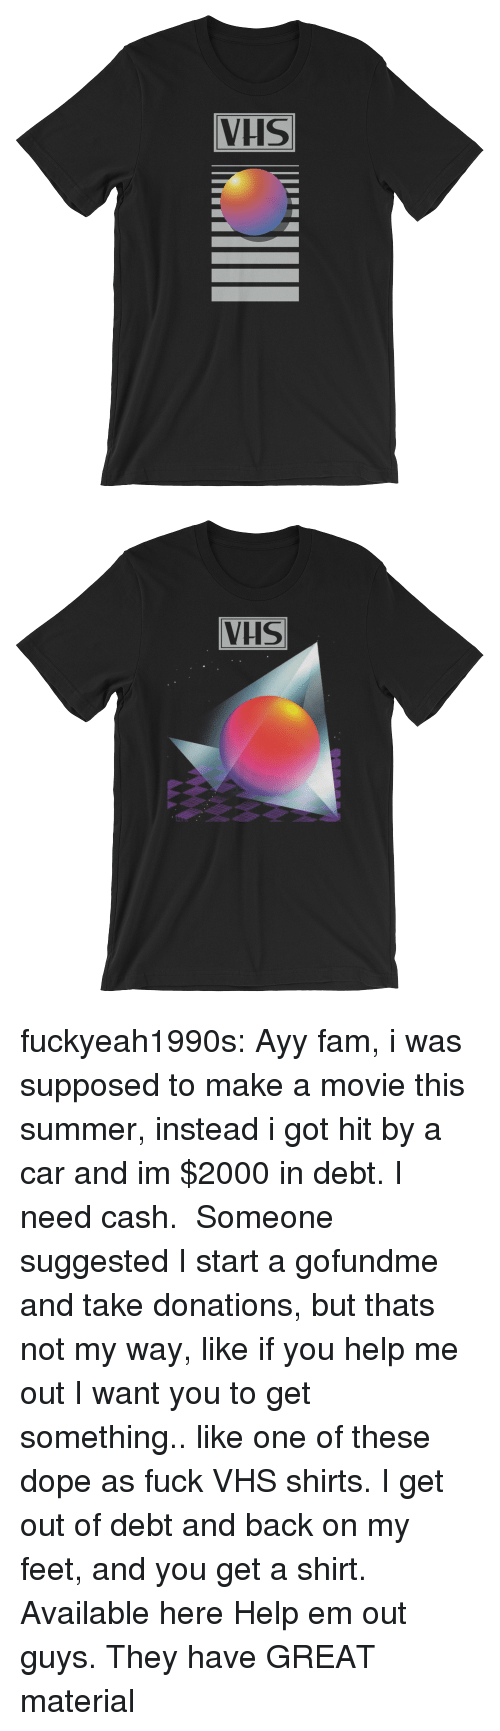 Hit By A Car: VHS   VHS fuckyeah1990s: Ayy fam, i was supposed to make a movie this summer, instead i got hit by a car and im $2000 in debt. I need cash.  Someone suggested I start a gofundme and take donations, but thats not my way, like if you help me out I want you to get something.. like one of these dope as fuck VHS shirts. I get out of debt and back on my feet, and you get a shirt.   Available here   Help em out guys. They have GREAT material